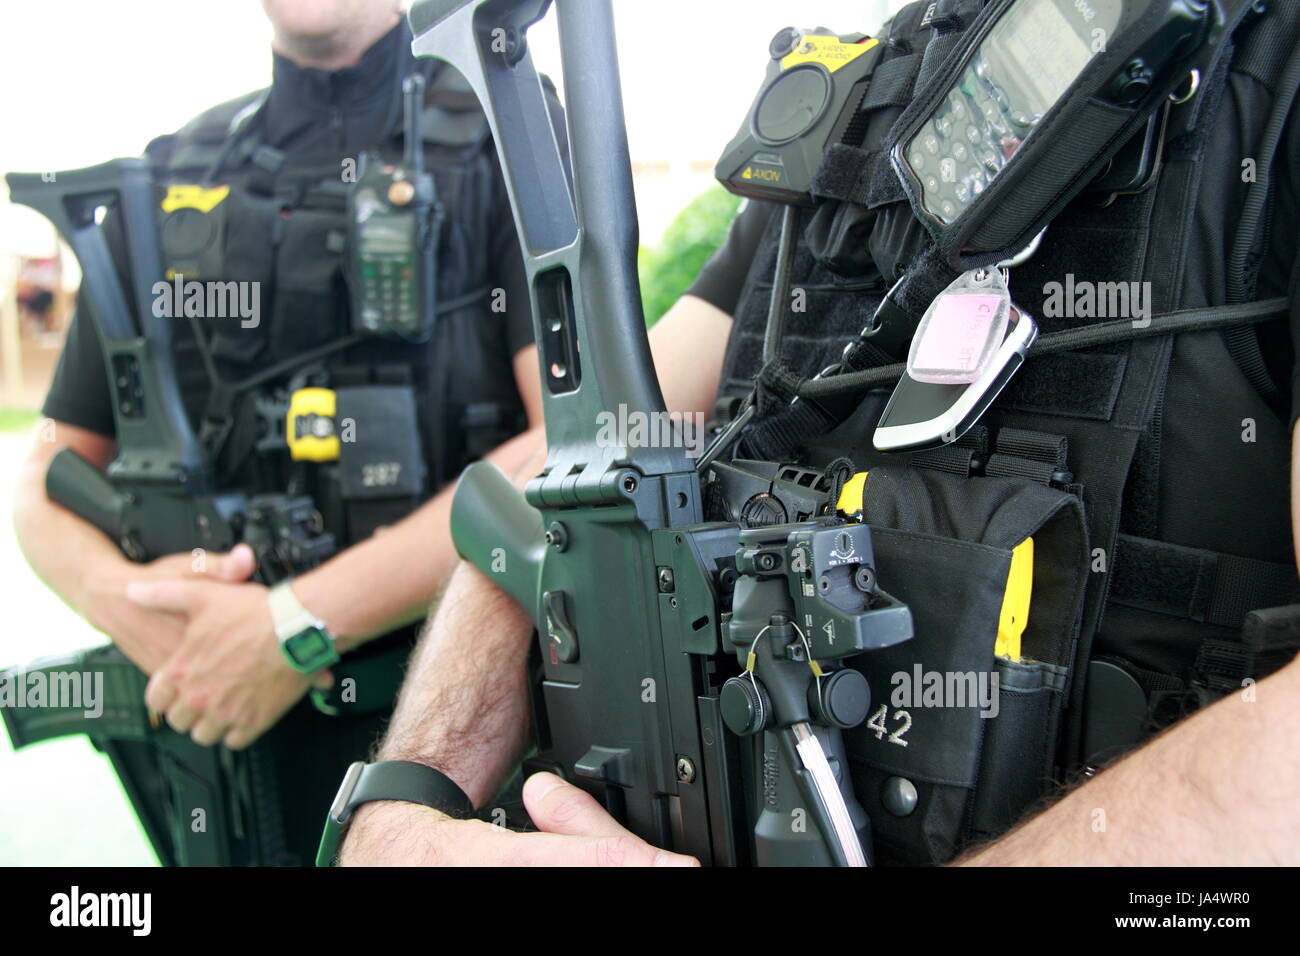 Armed police at Hay Festival 2017, Hay-on-Wye, Brecknockshire, Powys, Wales, Great Britain, United Kingdom, UK, - Stock Image